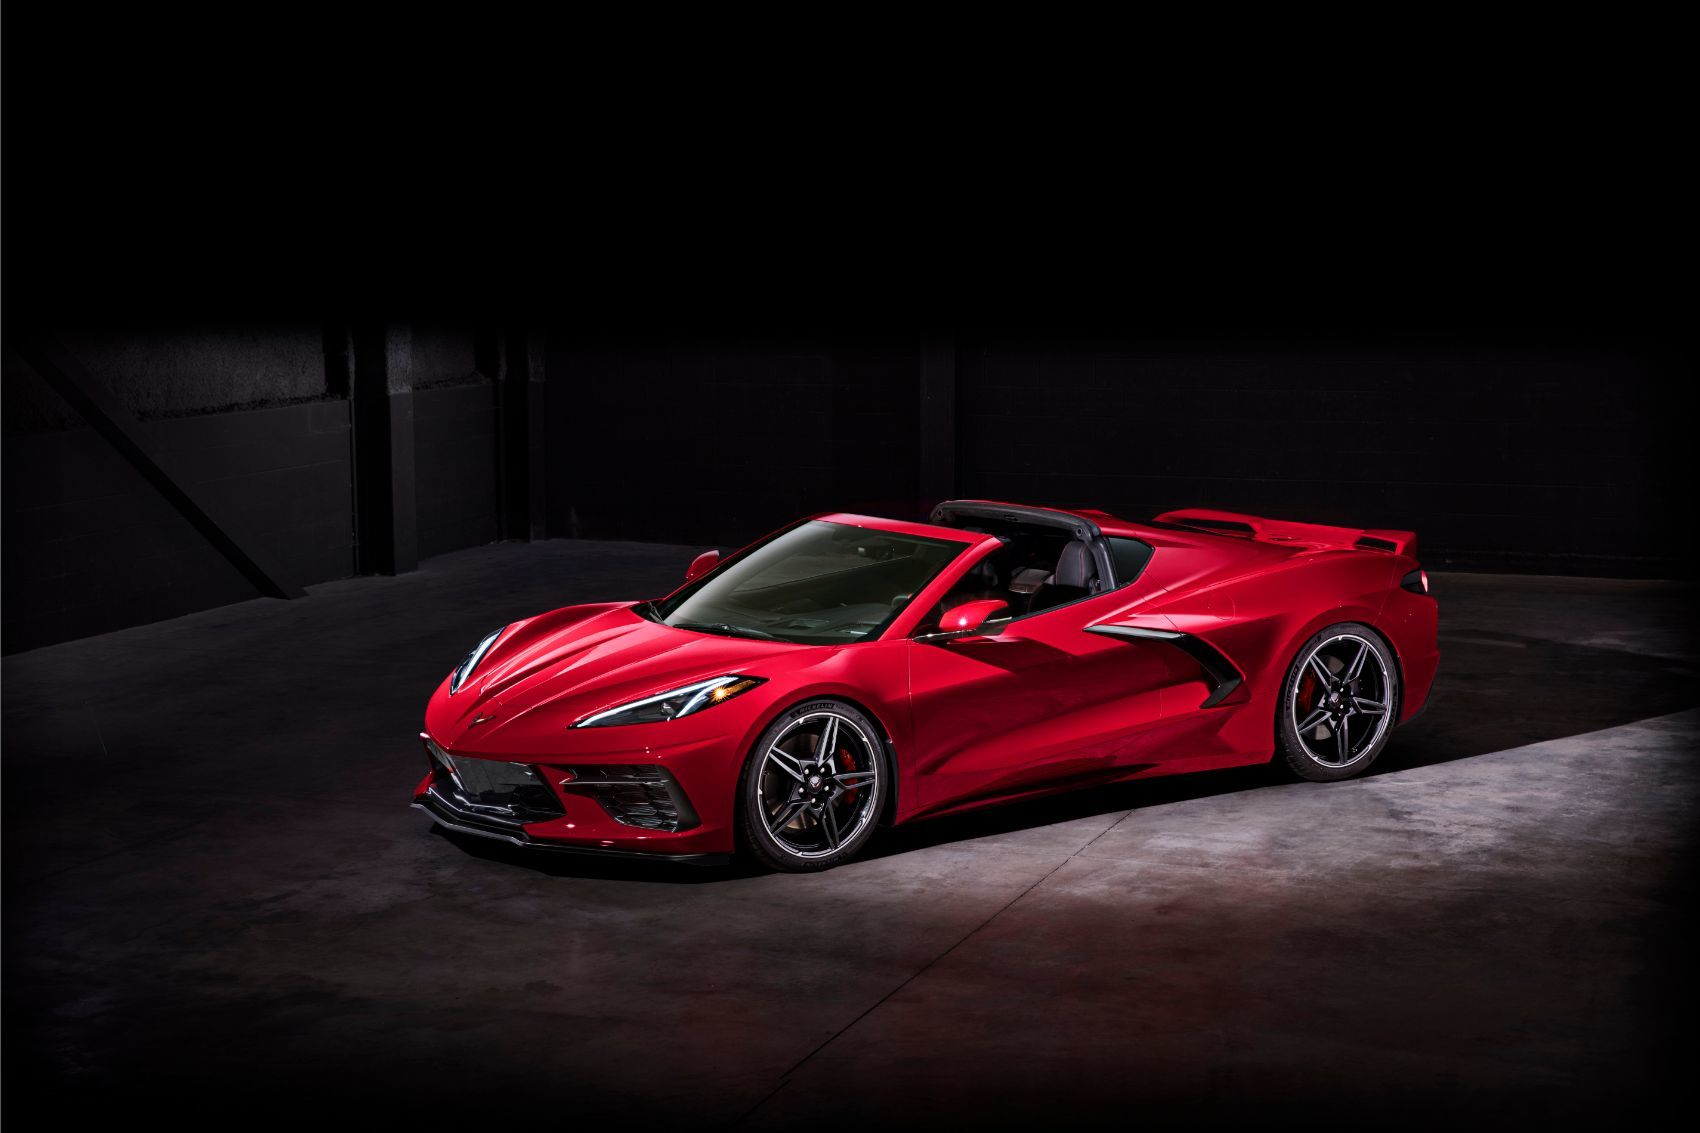 2020 Chevrolet Corvette Stingray 021